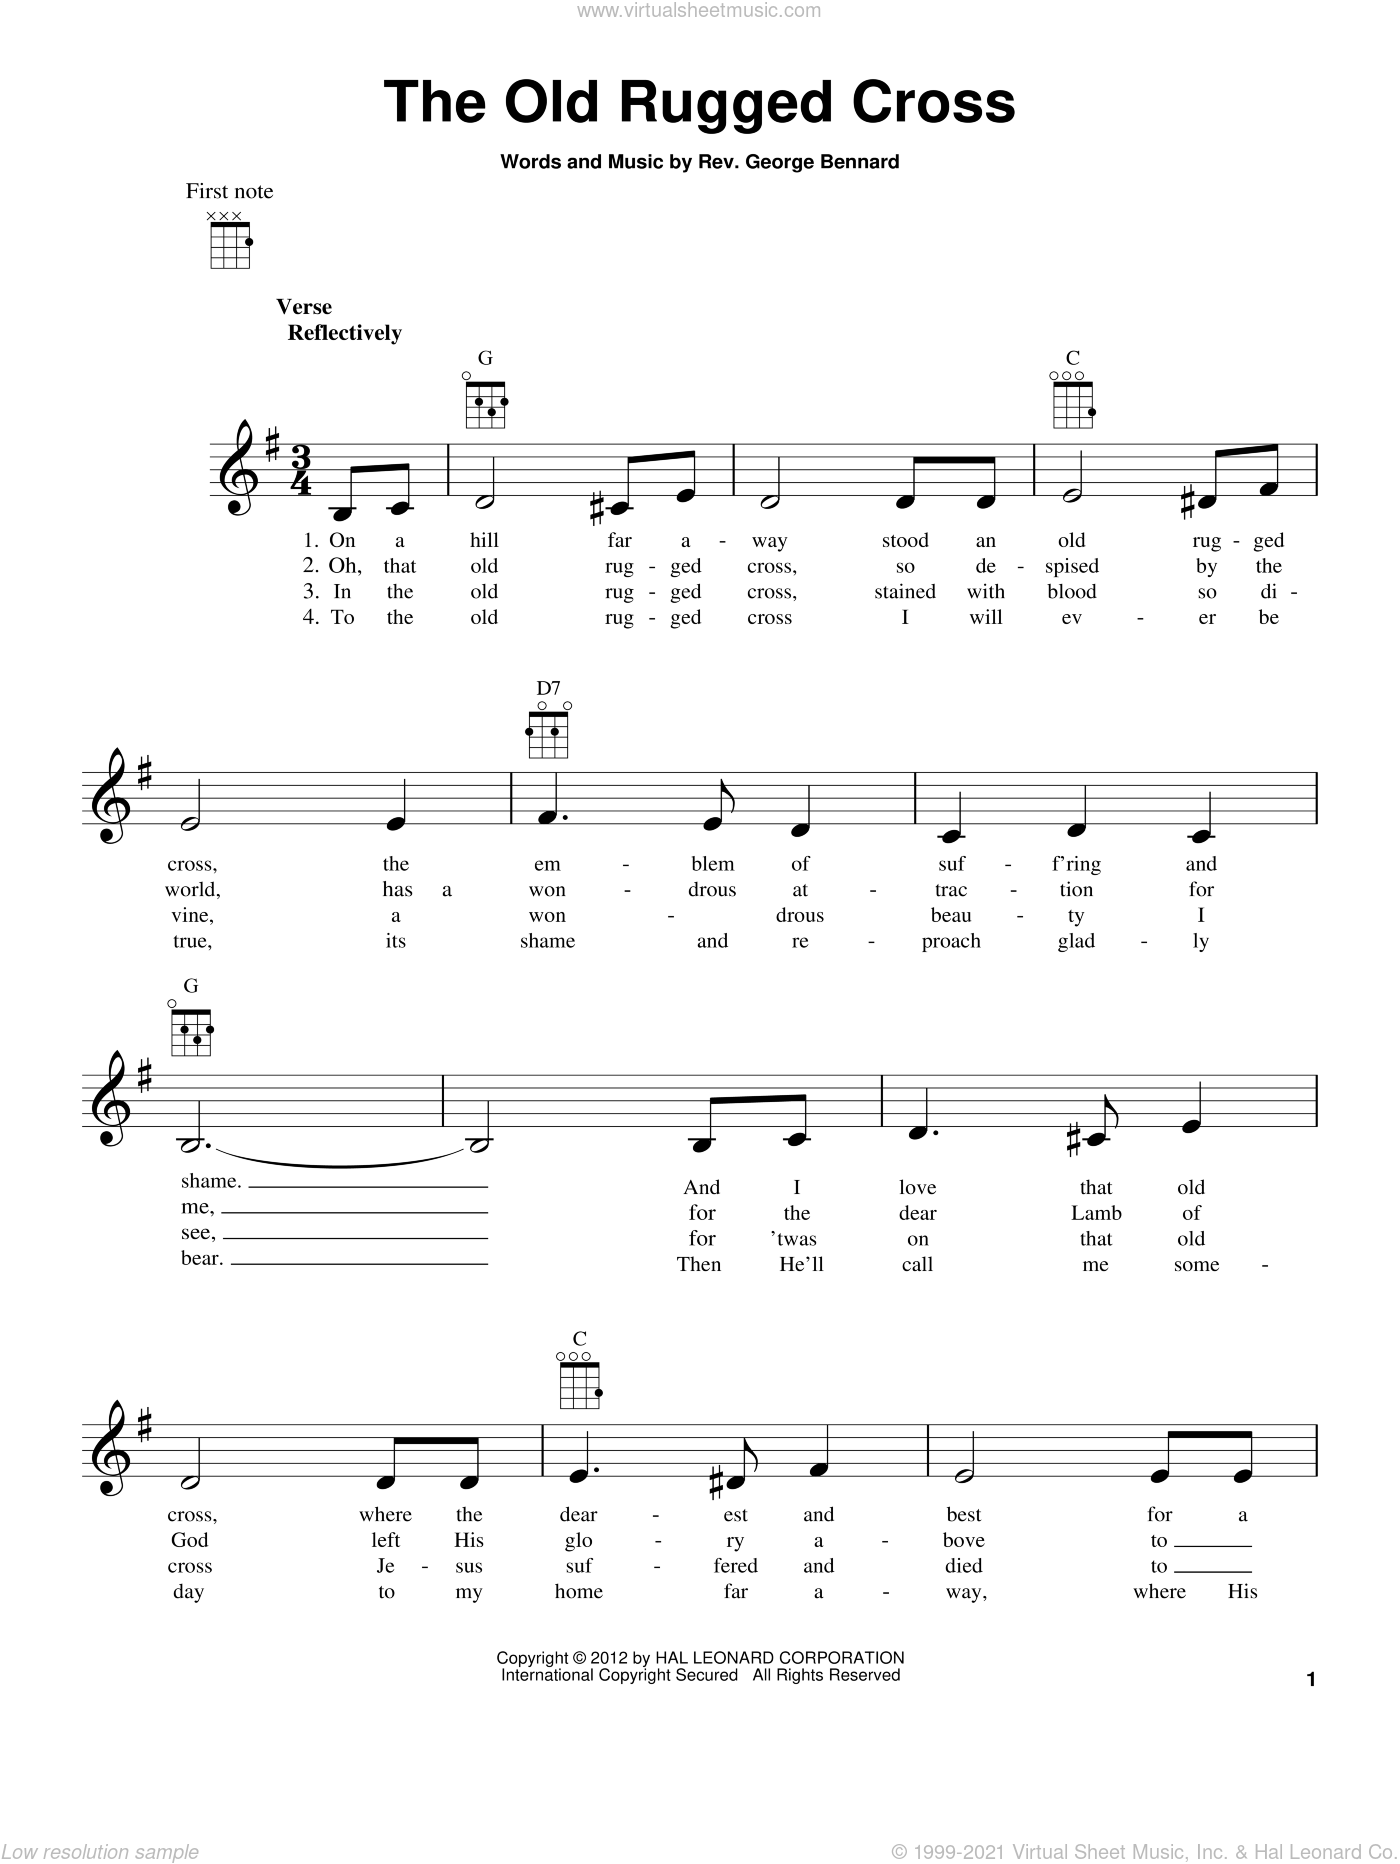 The Old Rugged Cross sheet music for ukulele by Rev. George Bennard